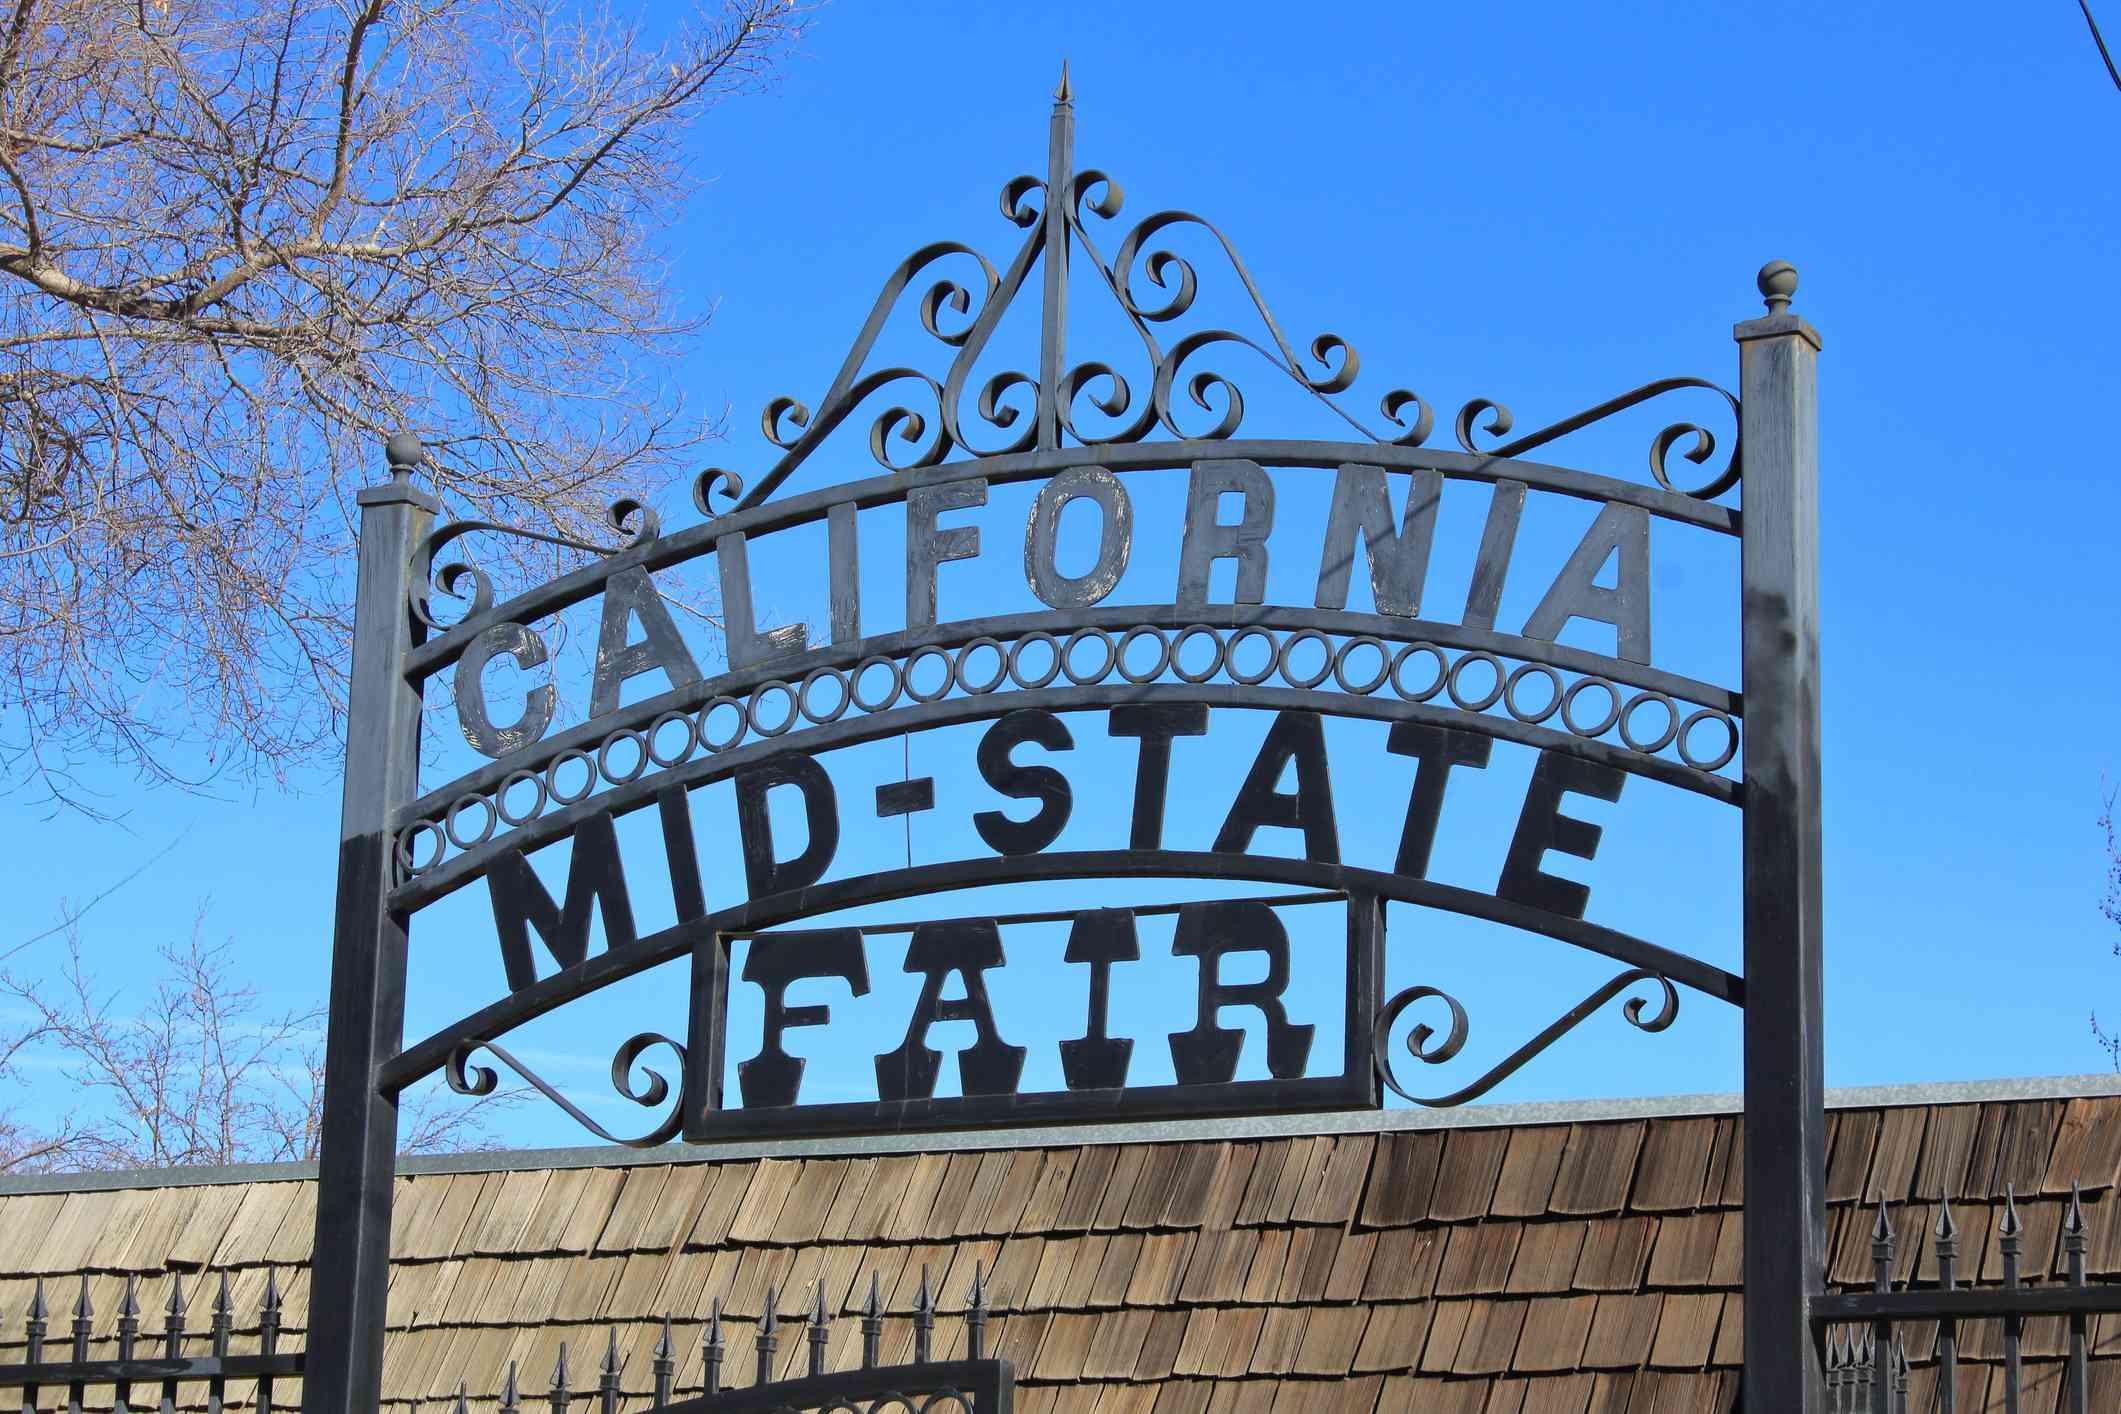 Gate in front of the Mid-state fairgrounds in Paso Robles, California